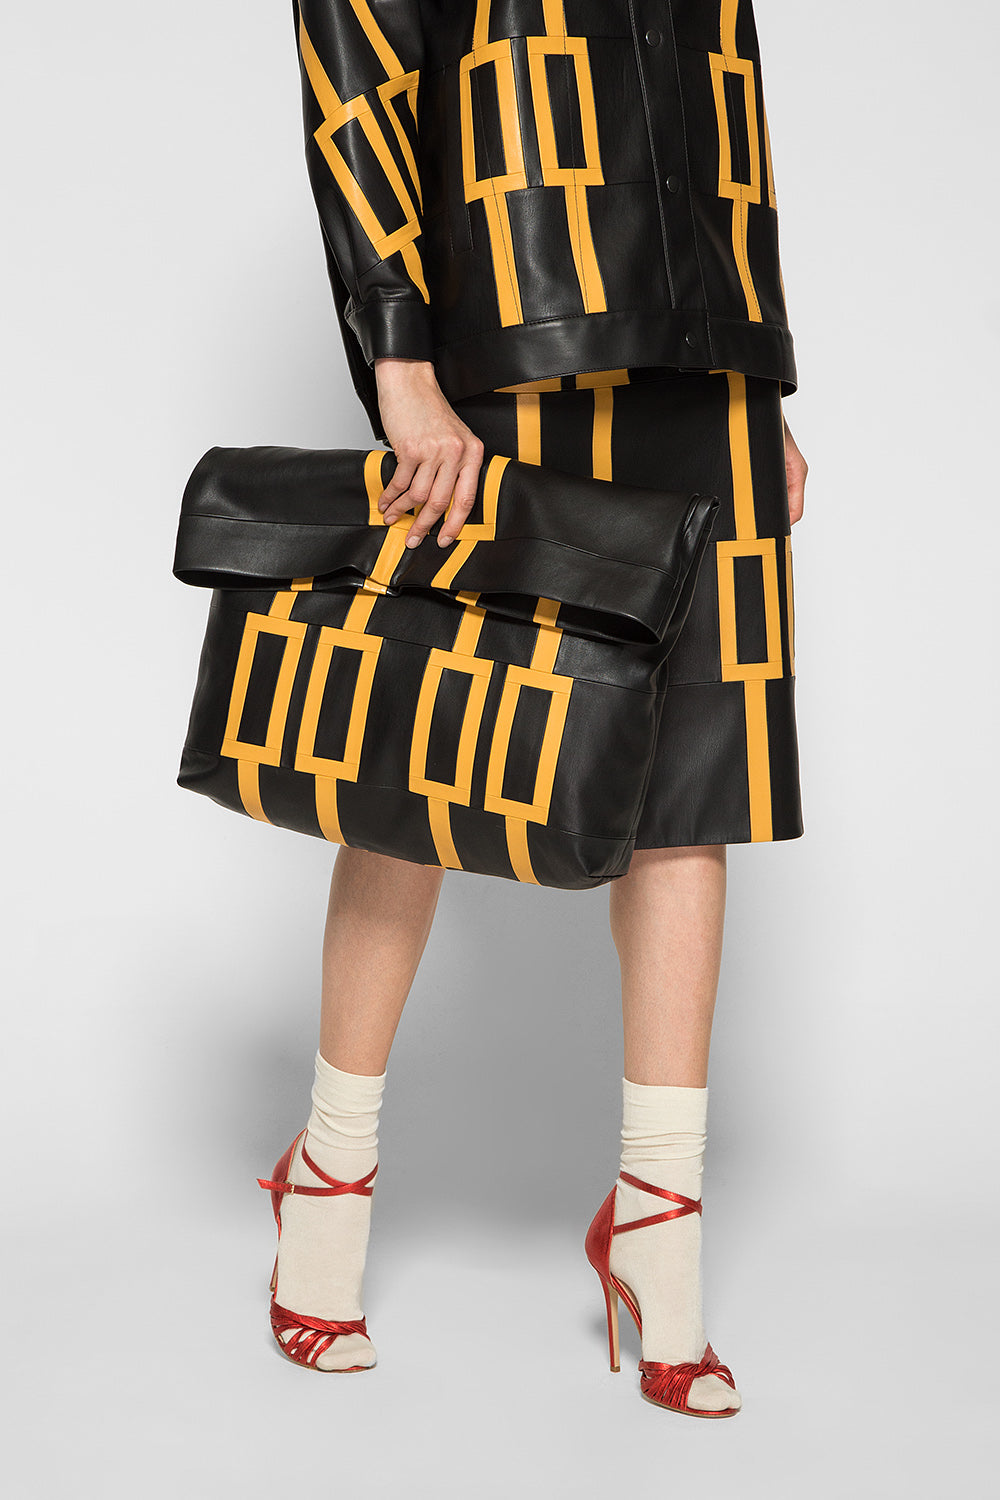 ARTDECO PATCHWORK BAG